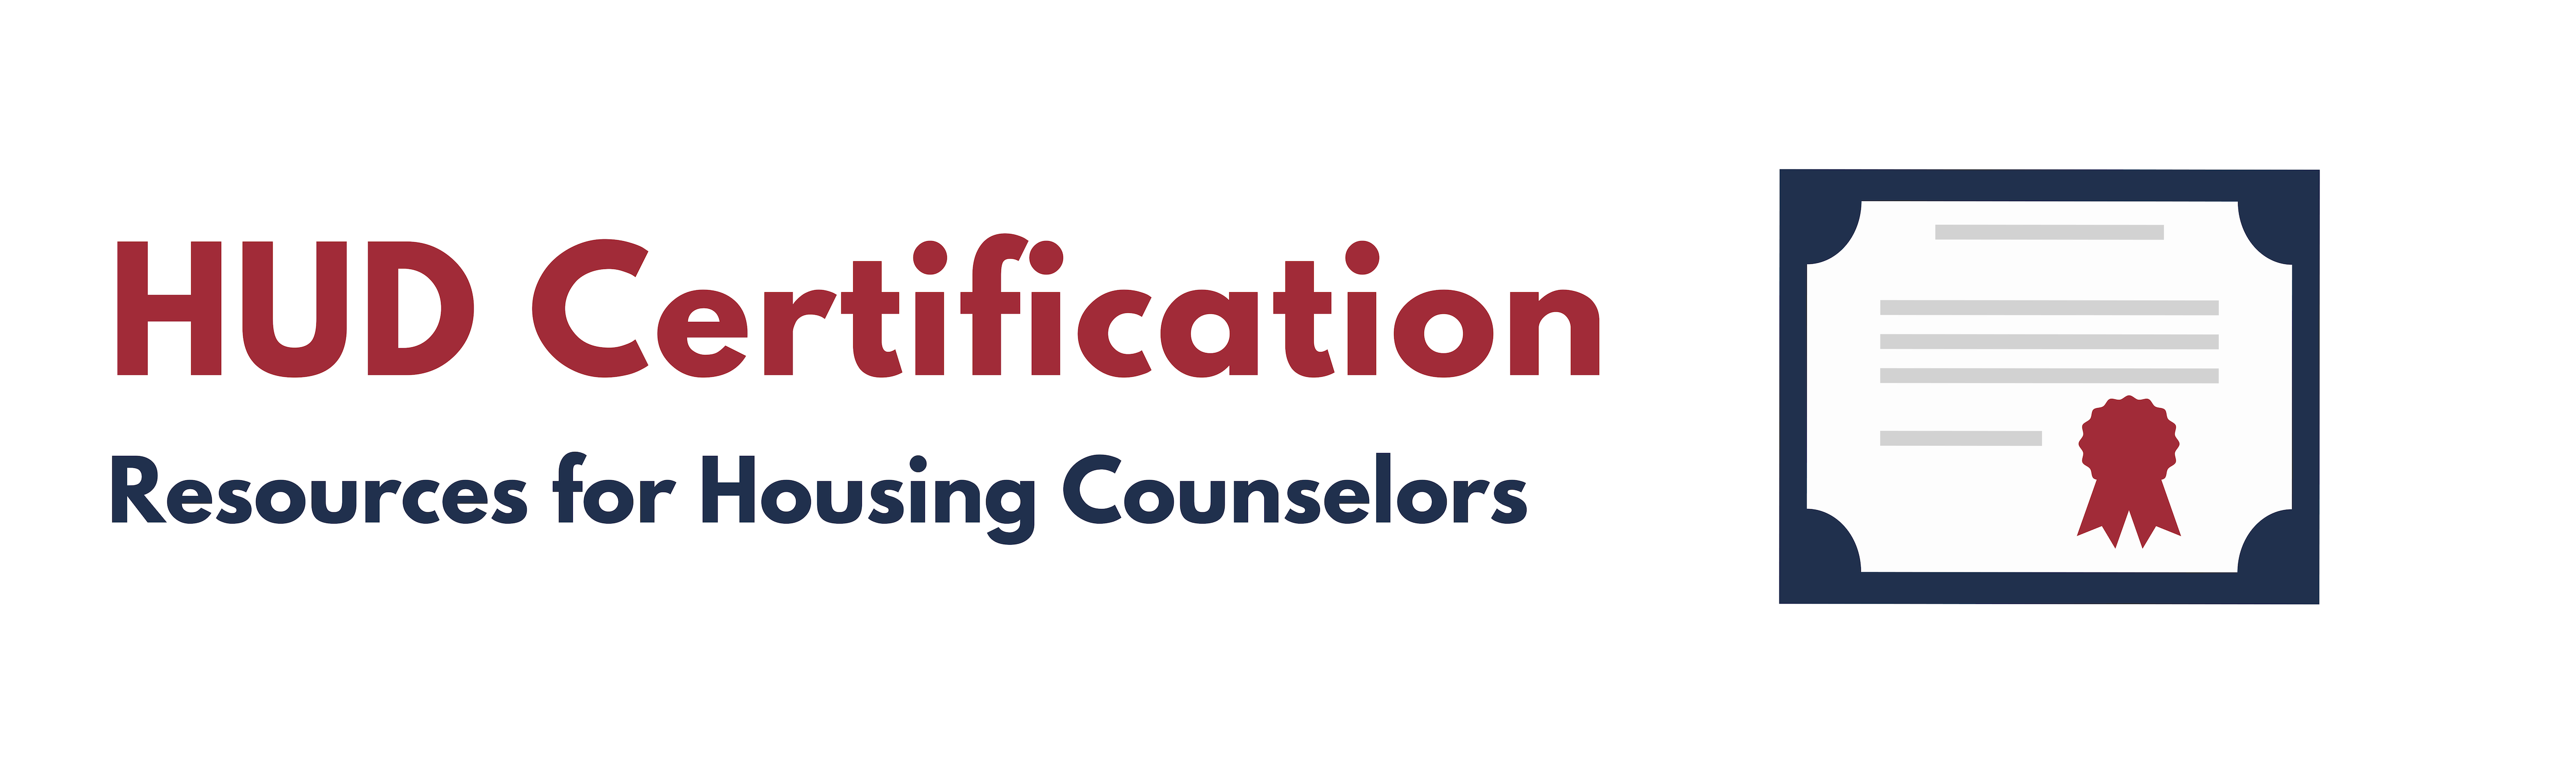 Study Group For Hud Housing Counseling Certification Housing